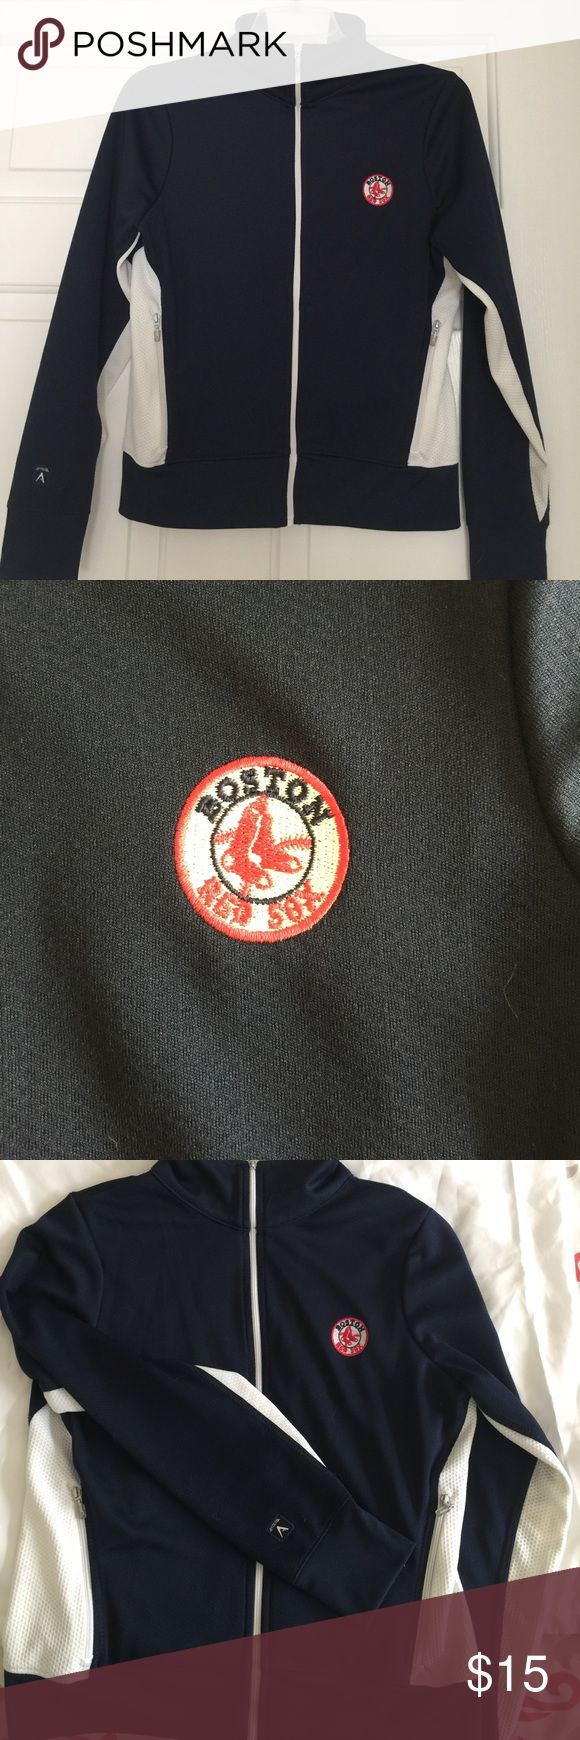 Boston Red Sox track jacket Navy blue and white full zip track jacket  with small Red Sox logo on left breast side.  Zippered side pockets. Minimal wear Antigua Jackets & Coats